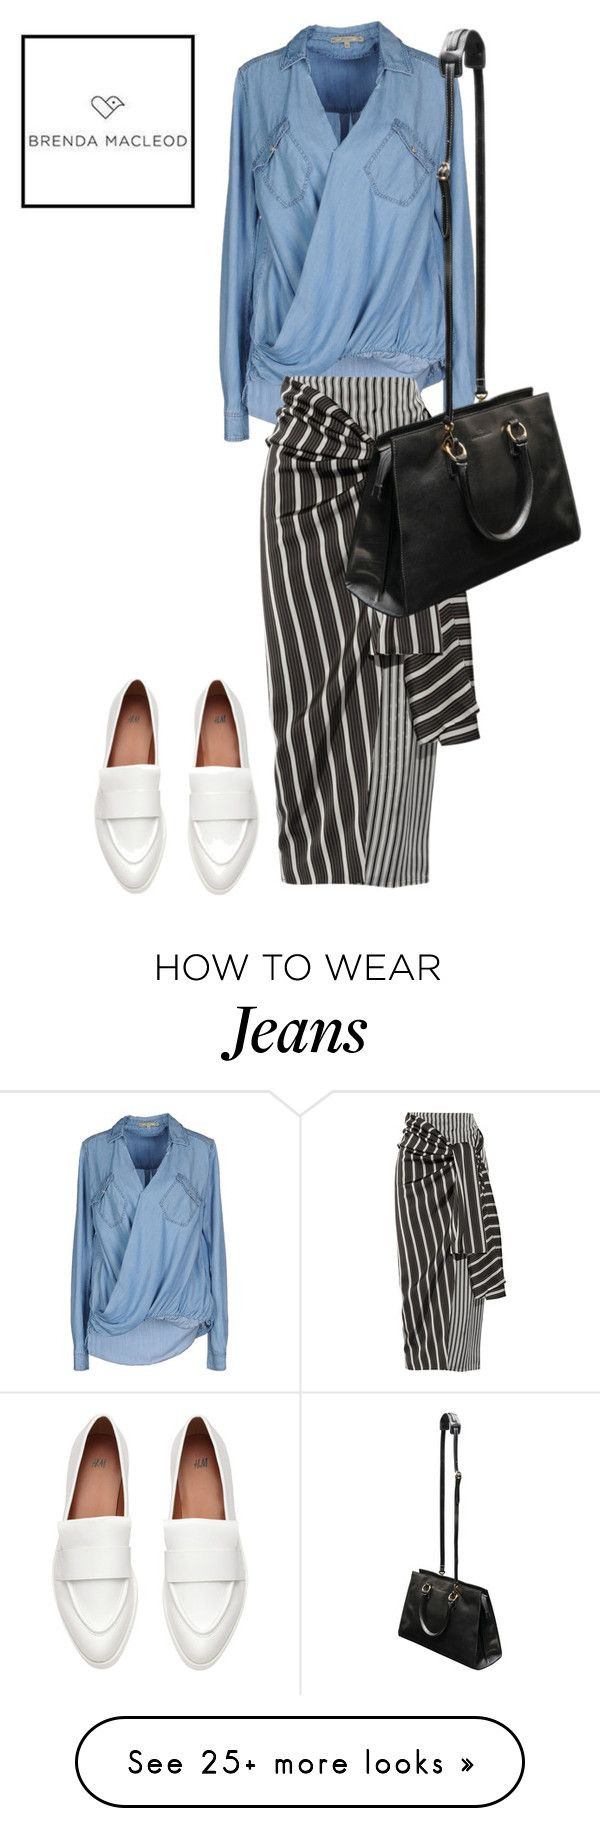 """loose"" by brendamacleod on Polyvore featuring Pepe Jeans London and Joseph"